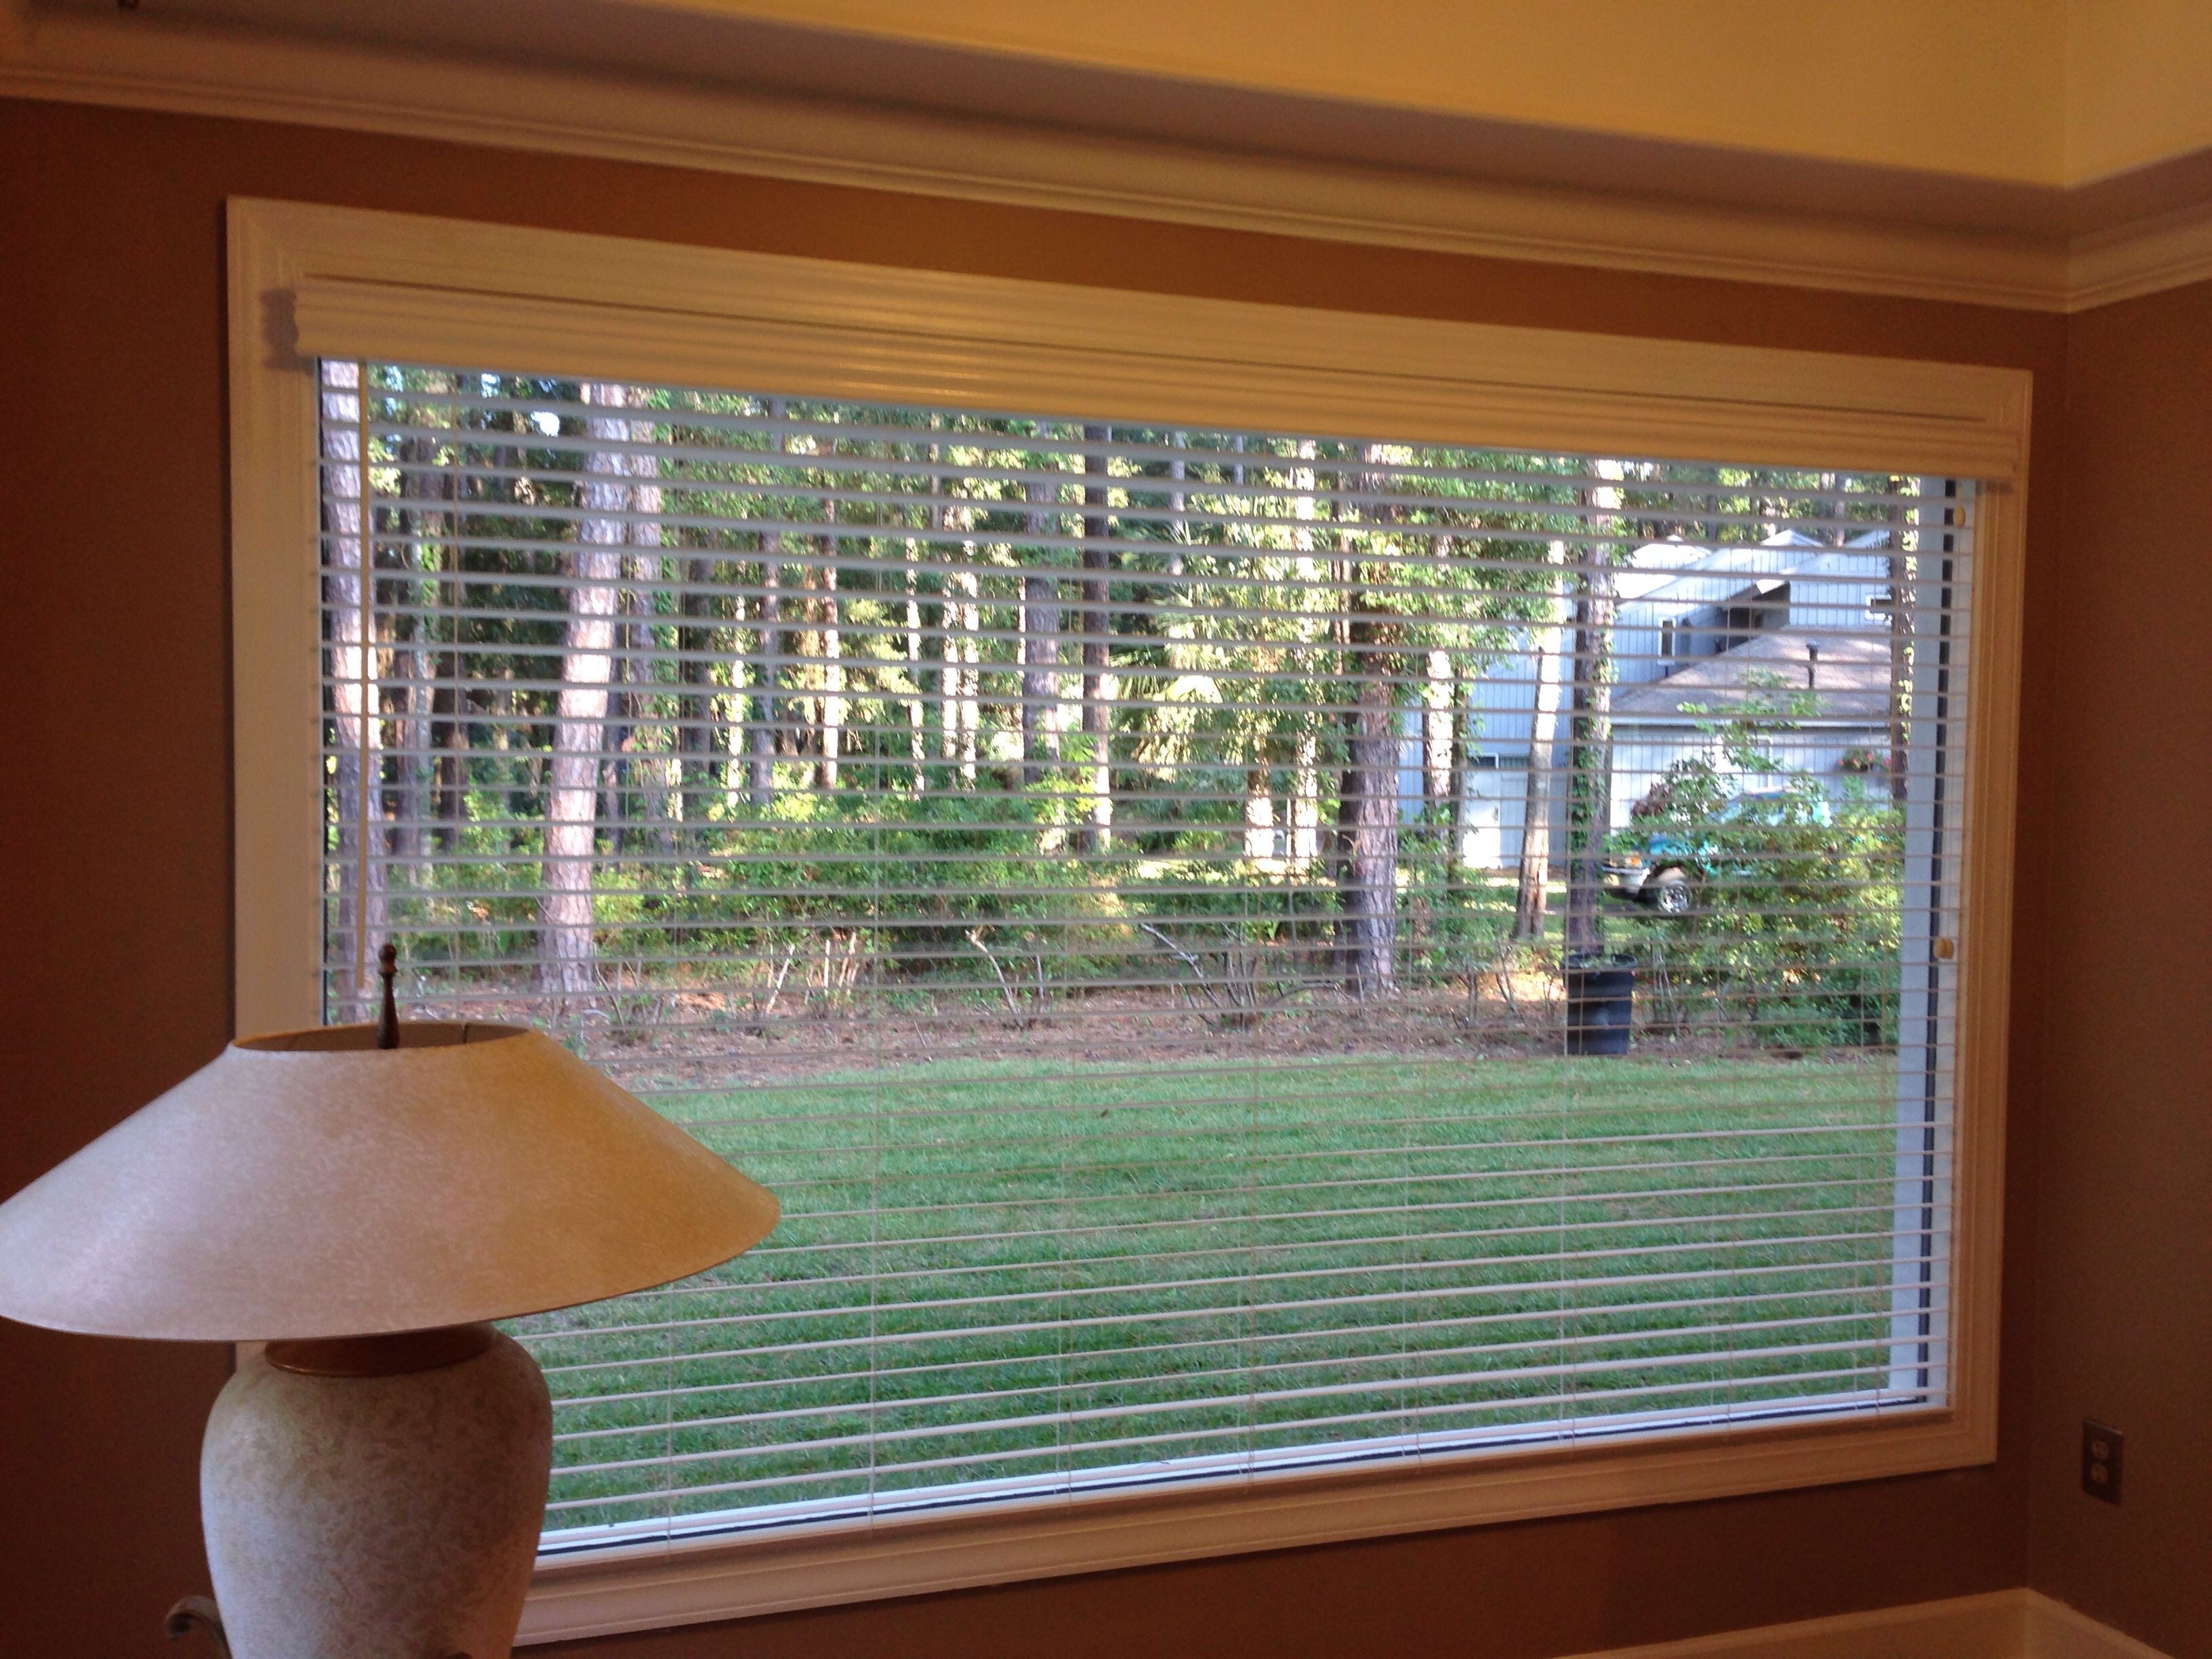 Signature Series Murano Soft Horizontal Blinds By Budget Blinds Of